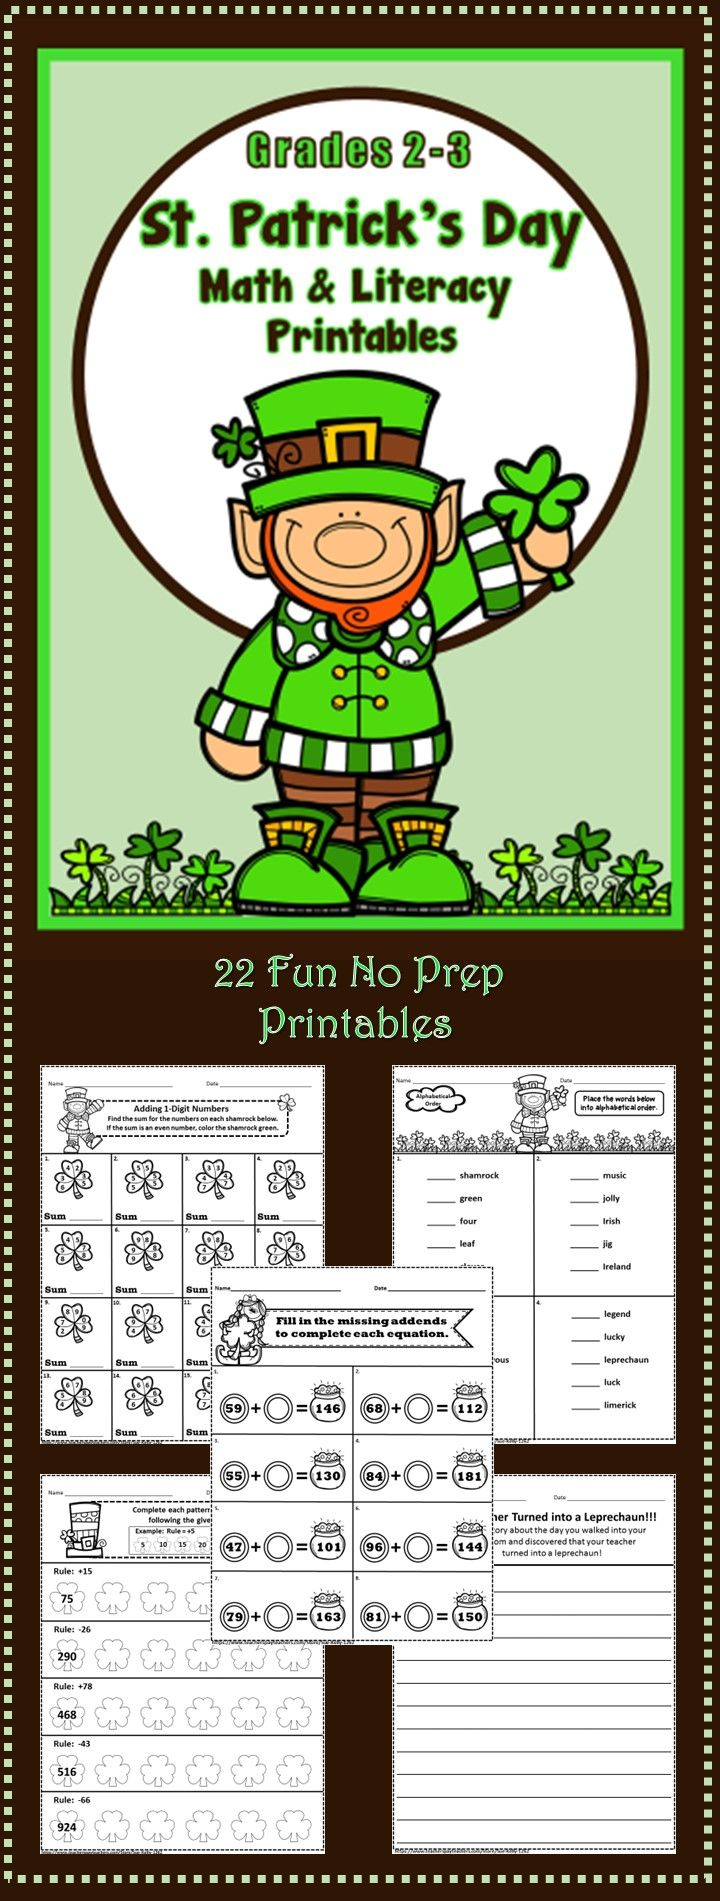 St. Patrick\'s Day Printables - Grades 2-3 | Literacy, Math and ...